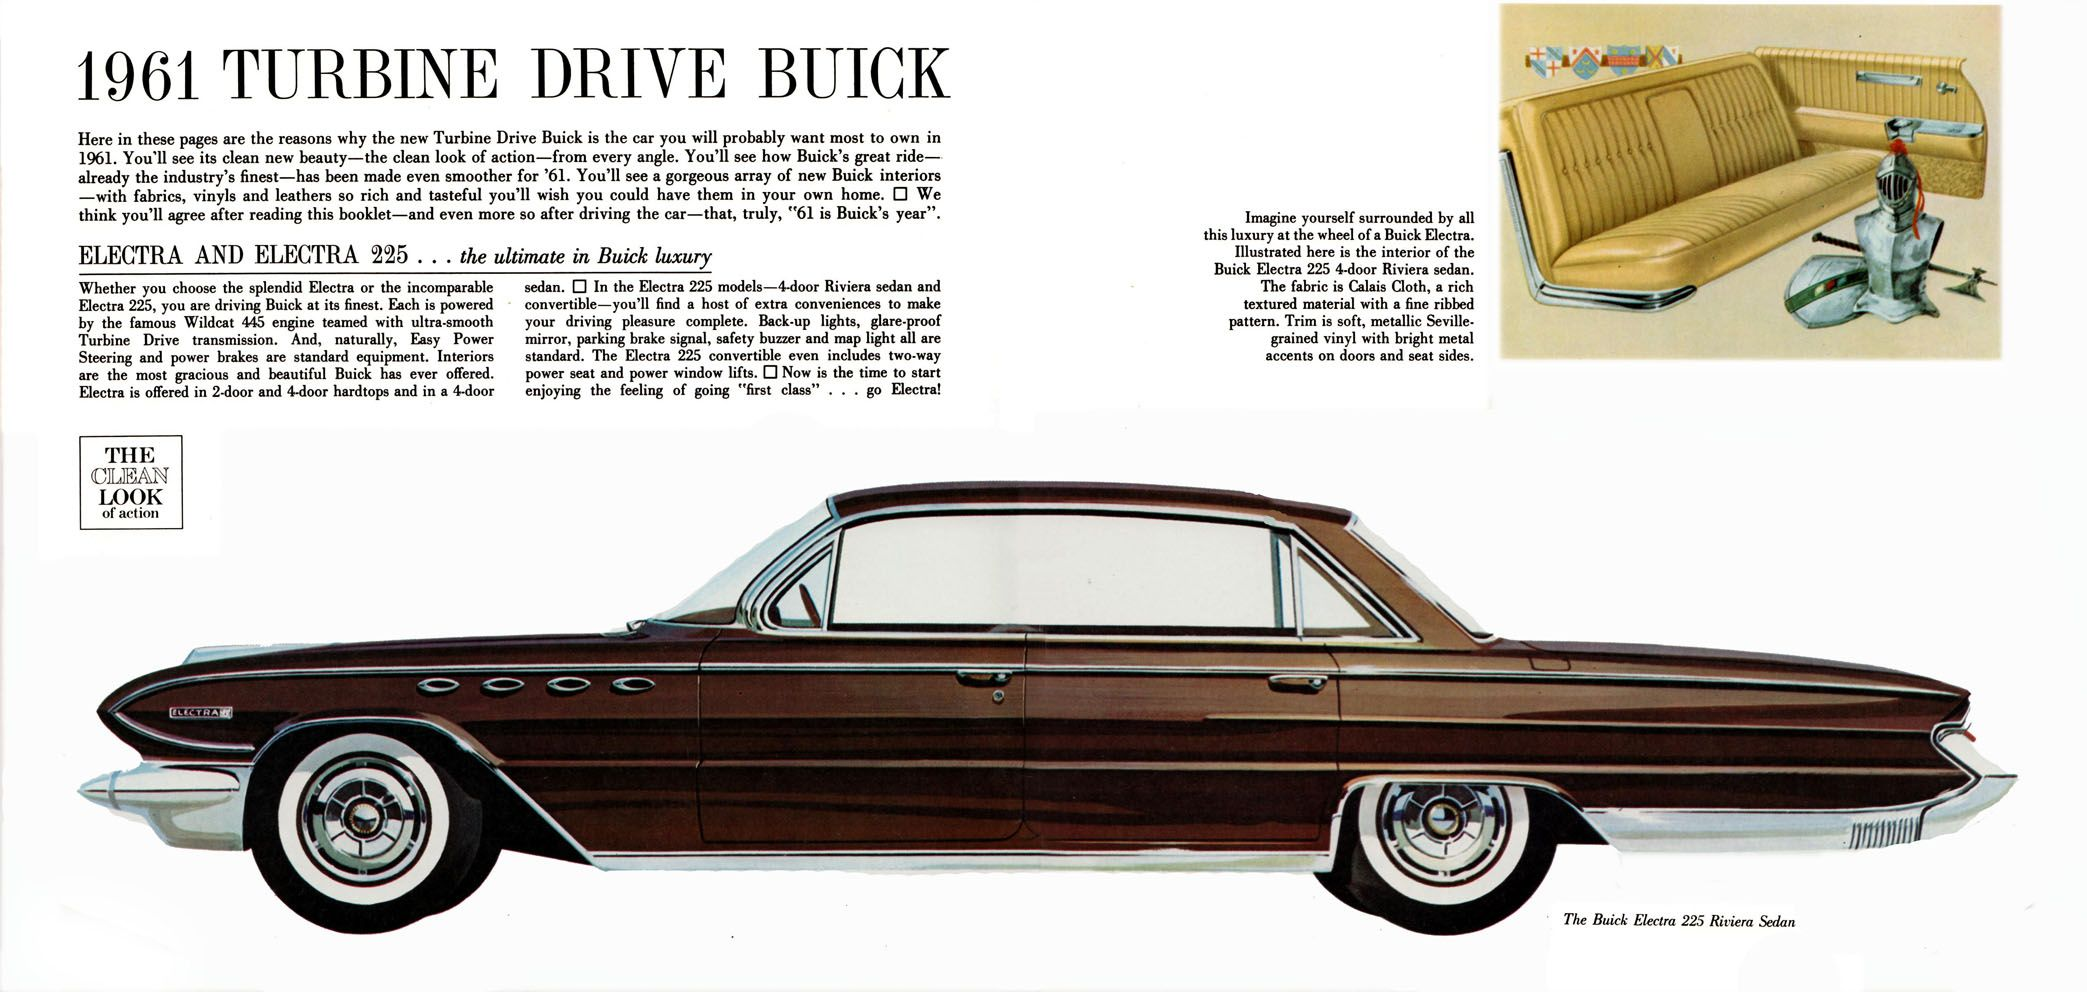 small resolution of 1961 buick electra 225 riviera sedan